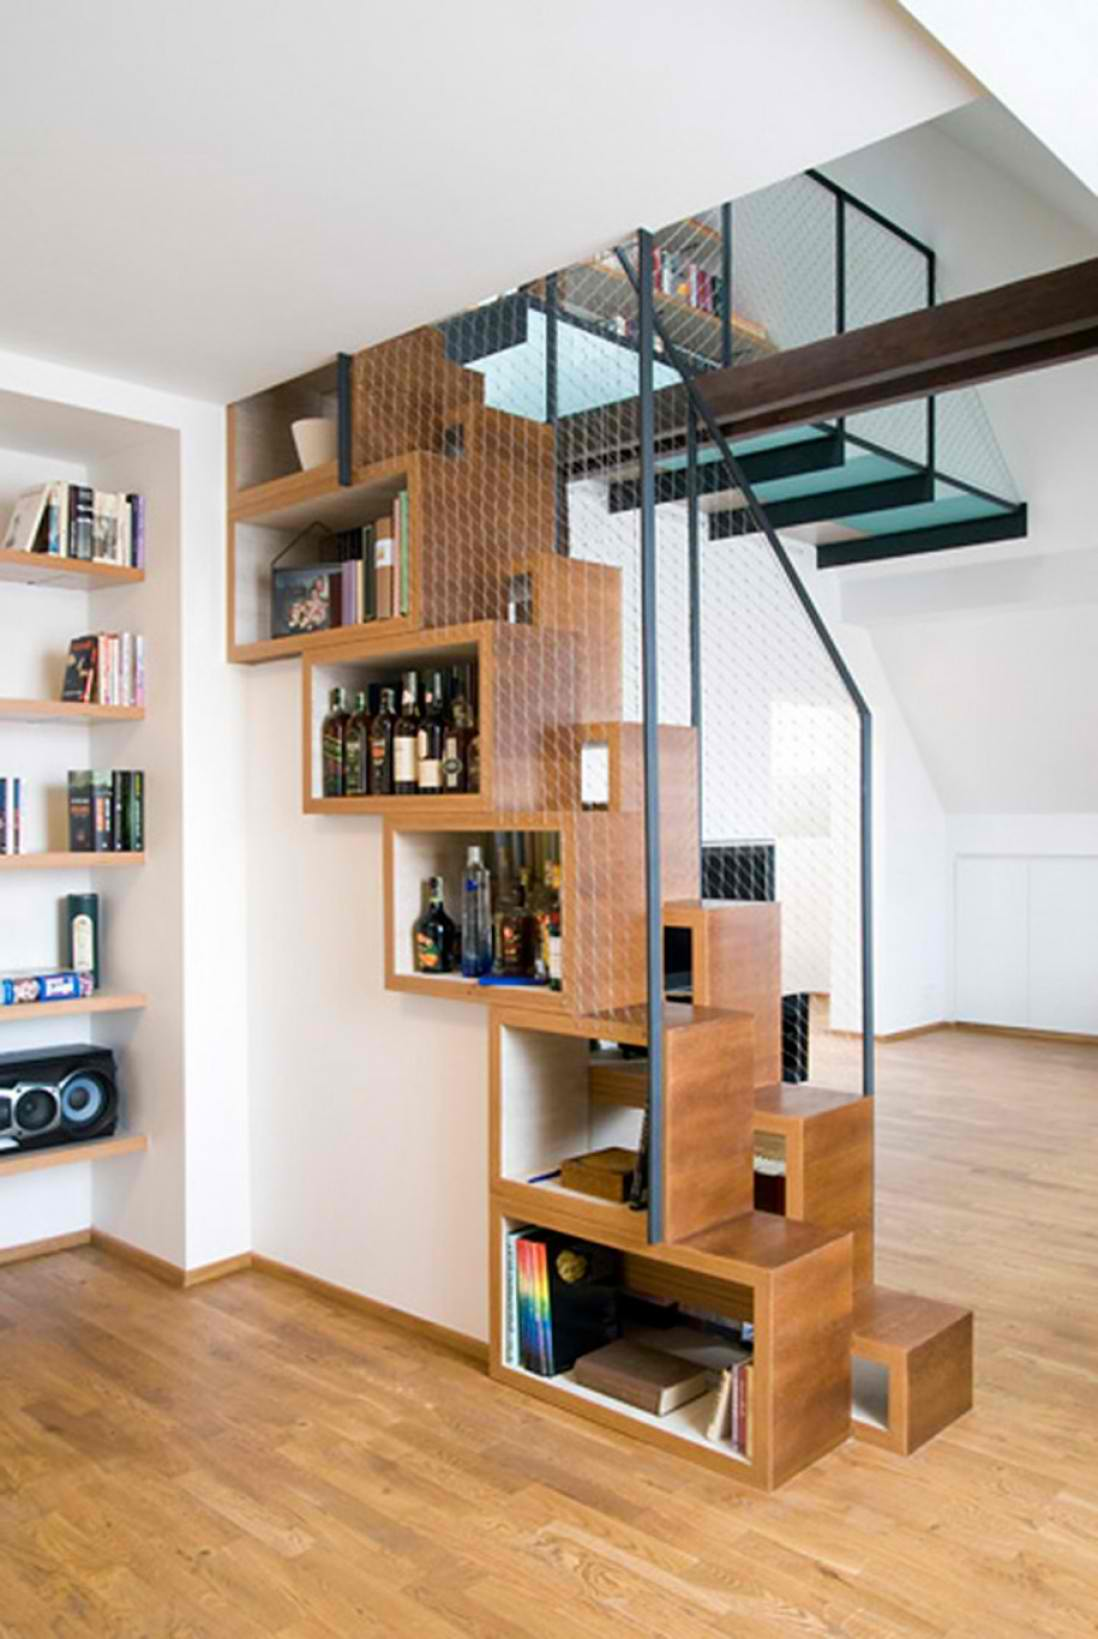 Interior Design Space: 7 Smart Design Solutions For Small Spaces